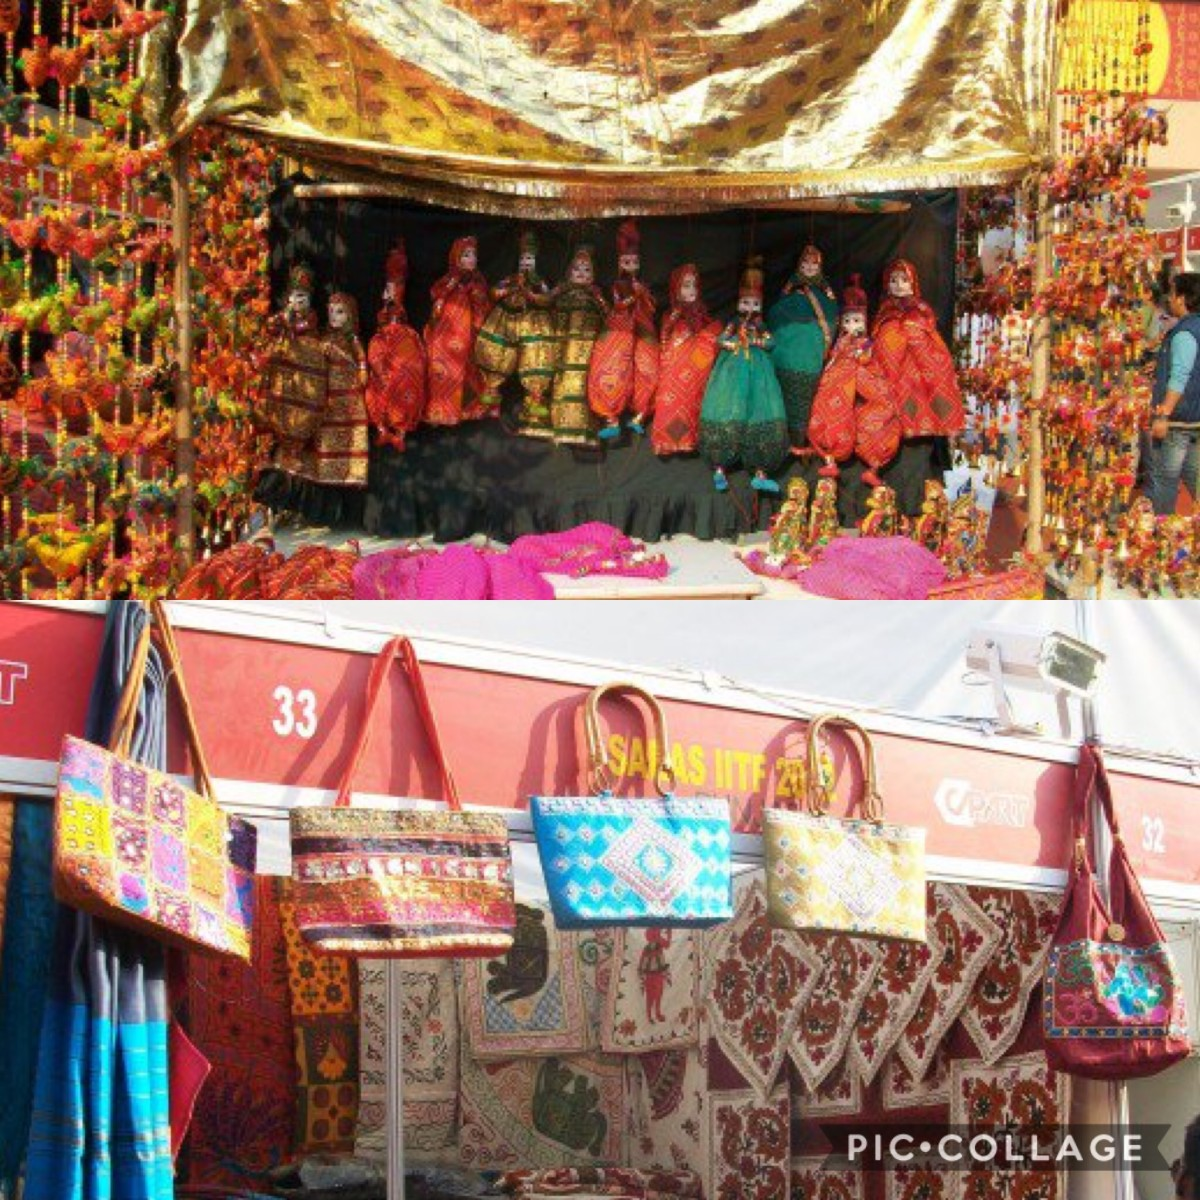 The colourful bags and puppets at the India International Trade Fair, New Delhi